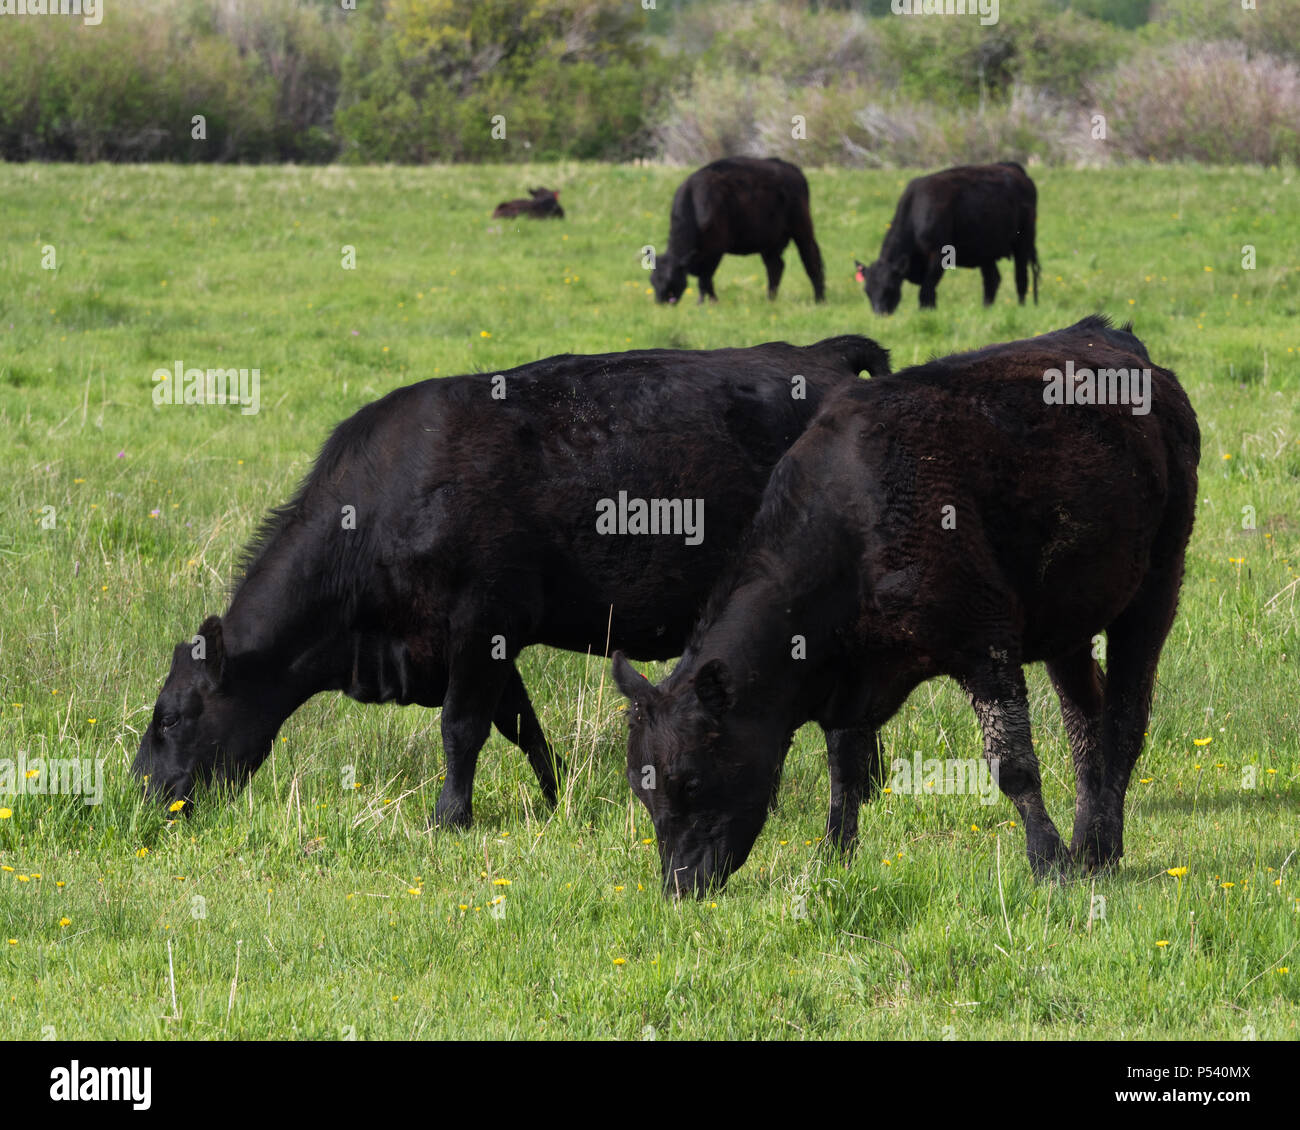 aberdeen angus cow in field stock photos aberdeen angus cow in field stock images alamy. Black Bedroom Furniture Sets. Home Design Ideas